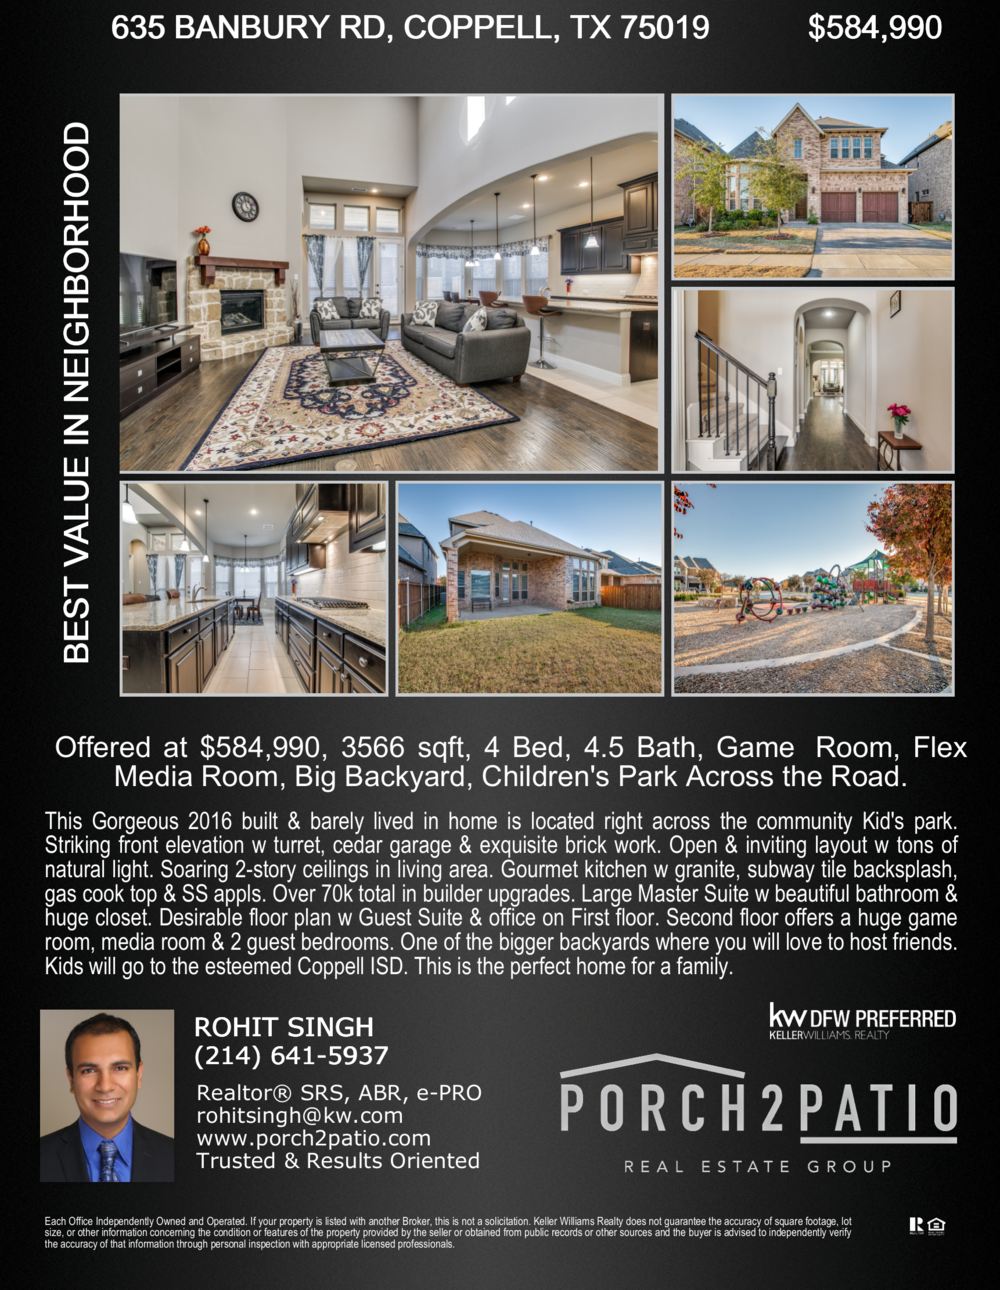 - 4 Bed, 4.5 Bath, 3566 Sq. Ft. - $584,990Gorgeous 2016 built Melrose floor plan by CalAtlantic homes. You will fall in love w this home. Open layout, tons of natural light & over 70k plus in builder upgrade value. Gorgeous front elevation, handscraped wood floors & high end light fixtures. Gourmet kitchen w granite, subway tile backsplash, gas cook top, SS appliances & spacious pantry. Large Master Suite w vaulted ceilings. Beautiful Master bath & huge closet. Second bedroom on 1st floor w en suite bath. Spacious office w french doors. Upstairs w a huge game room, media room & 2 guest bedrooms. One of the bigger backyards in the community along w covered patio. Children's park right across the road. This is the perfect home to raise a beautiful family !!